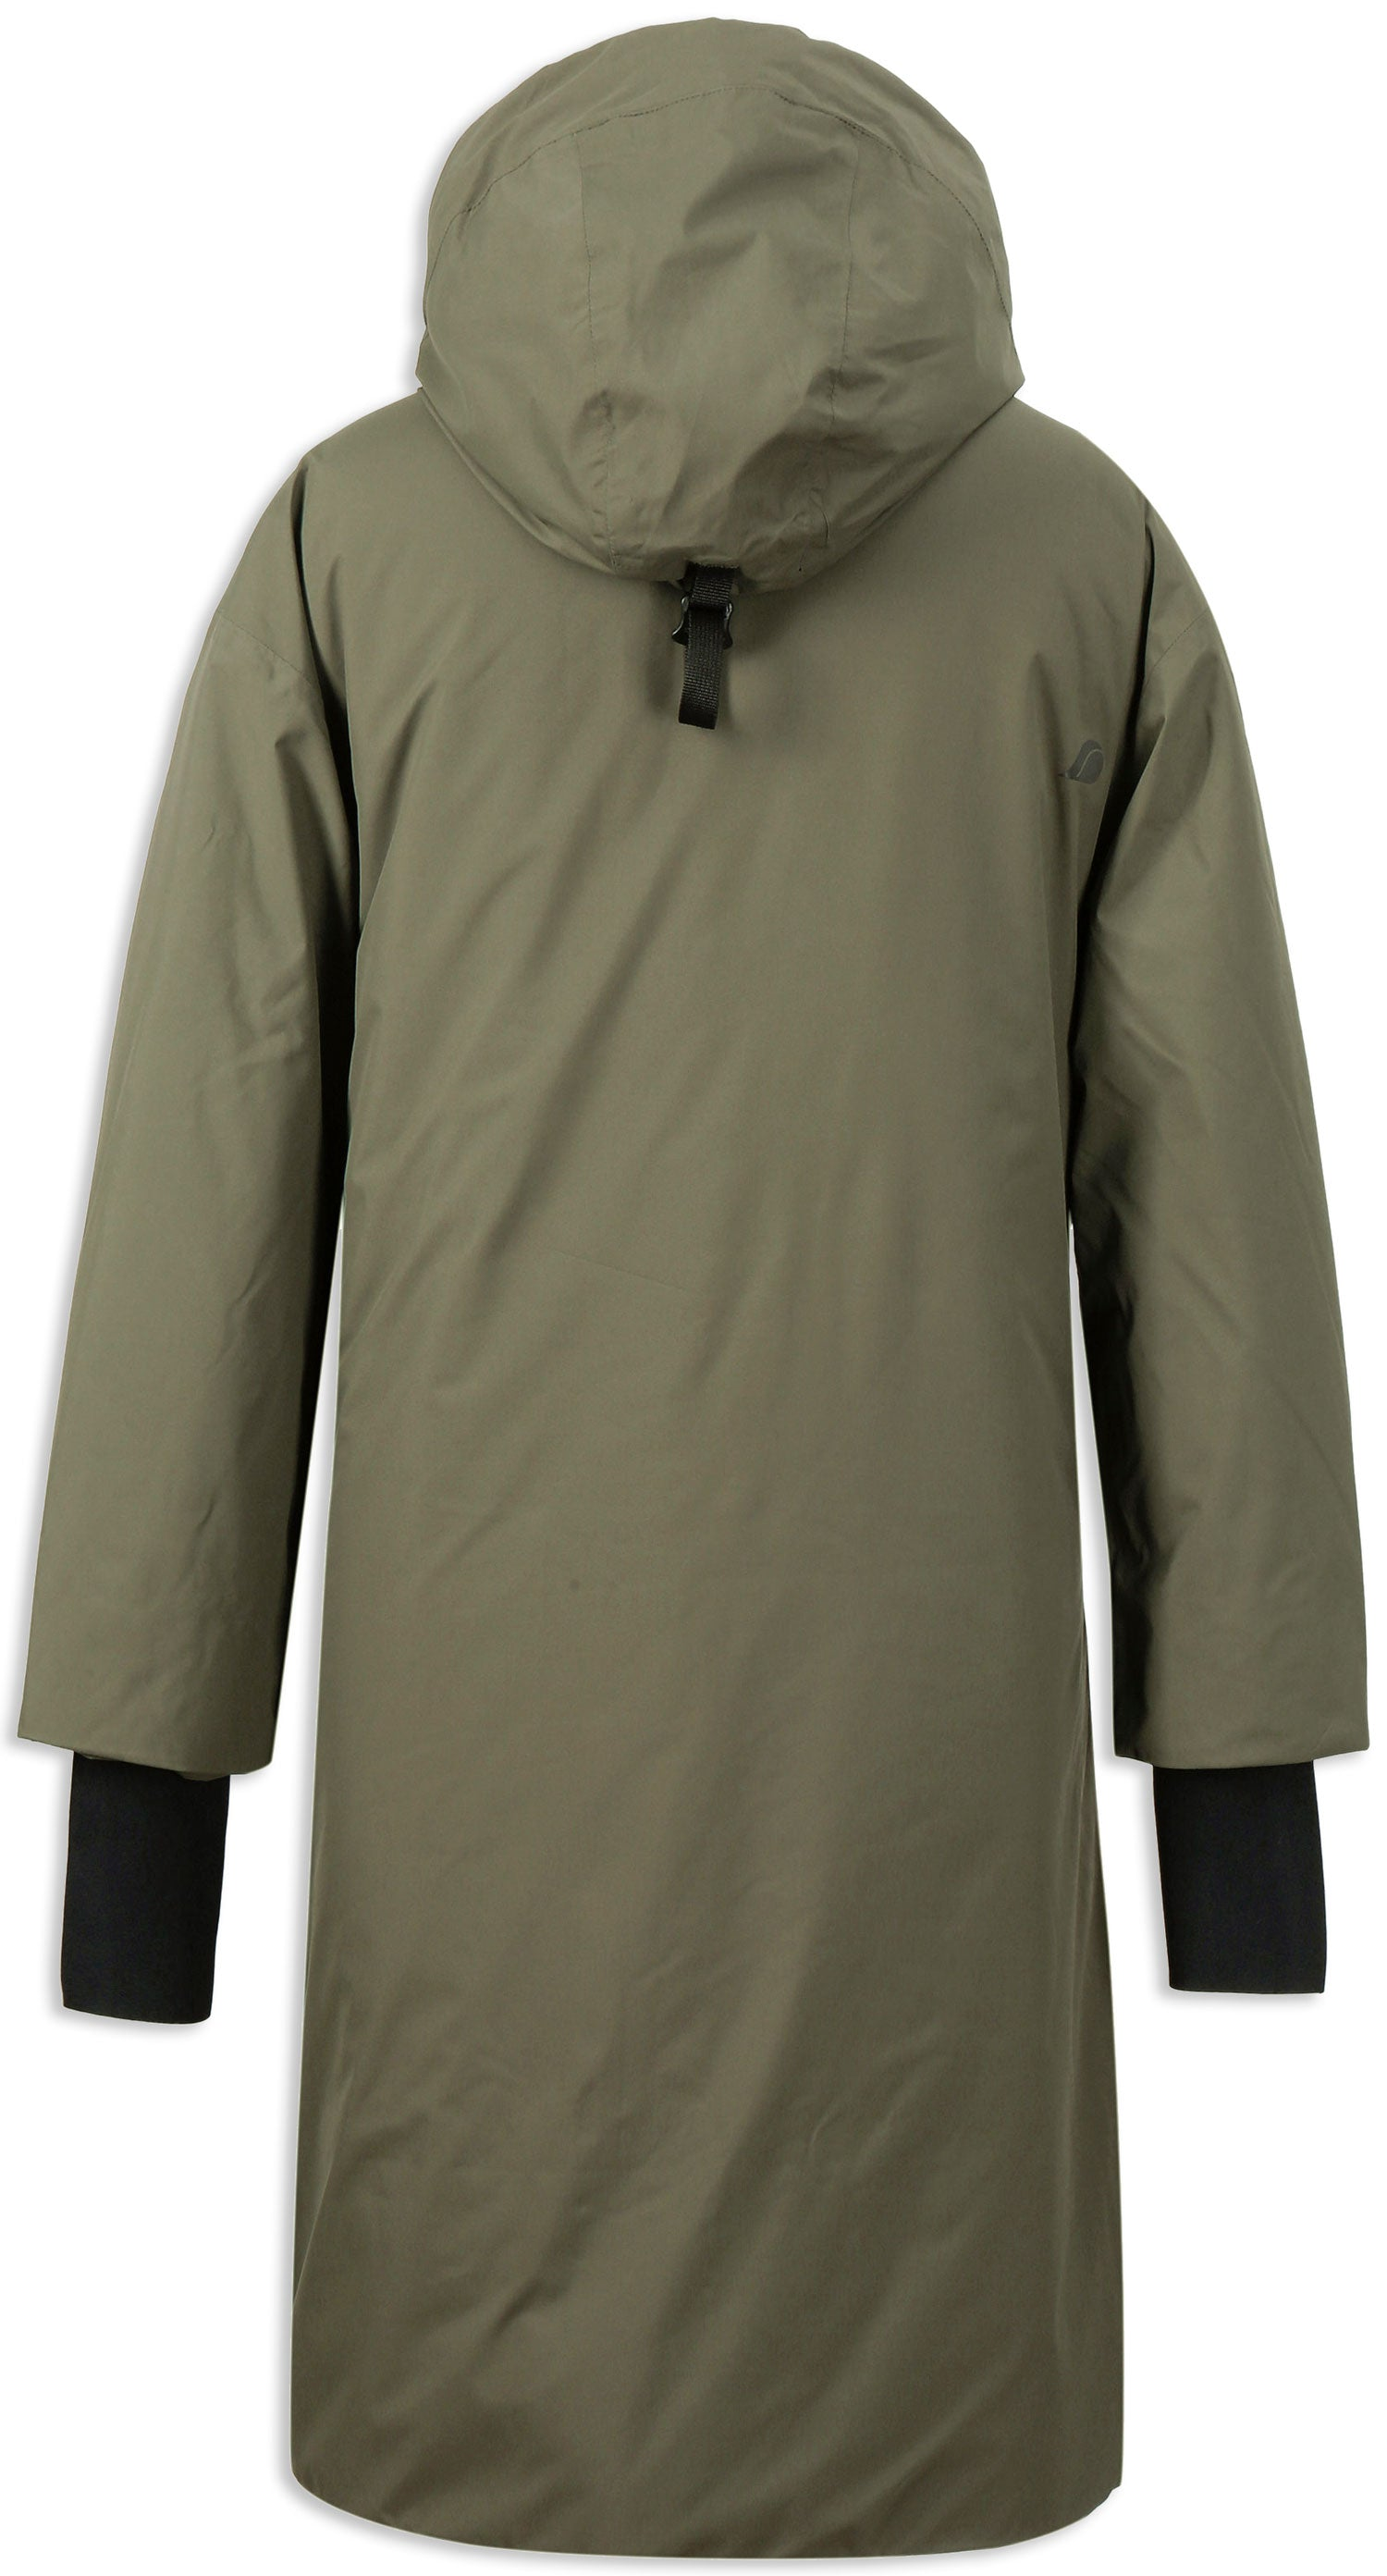 Back View Fog Green Didriksons Aino 2 Waterproof Parka